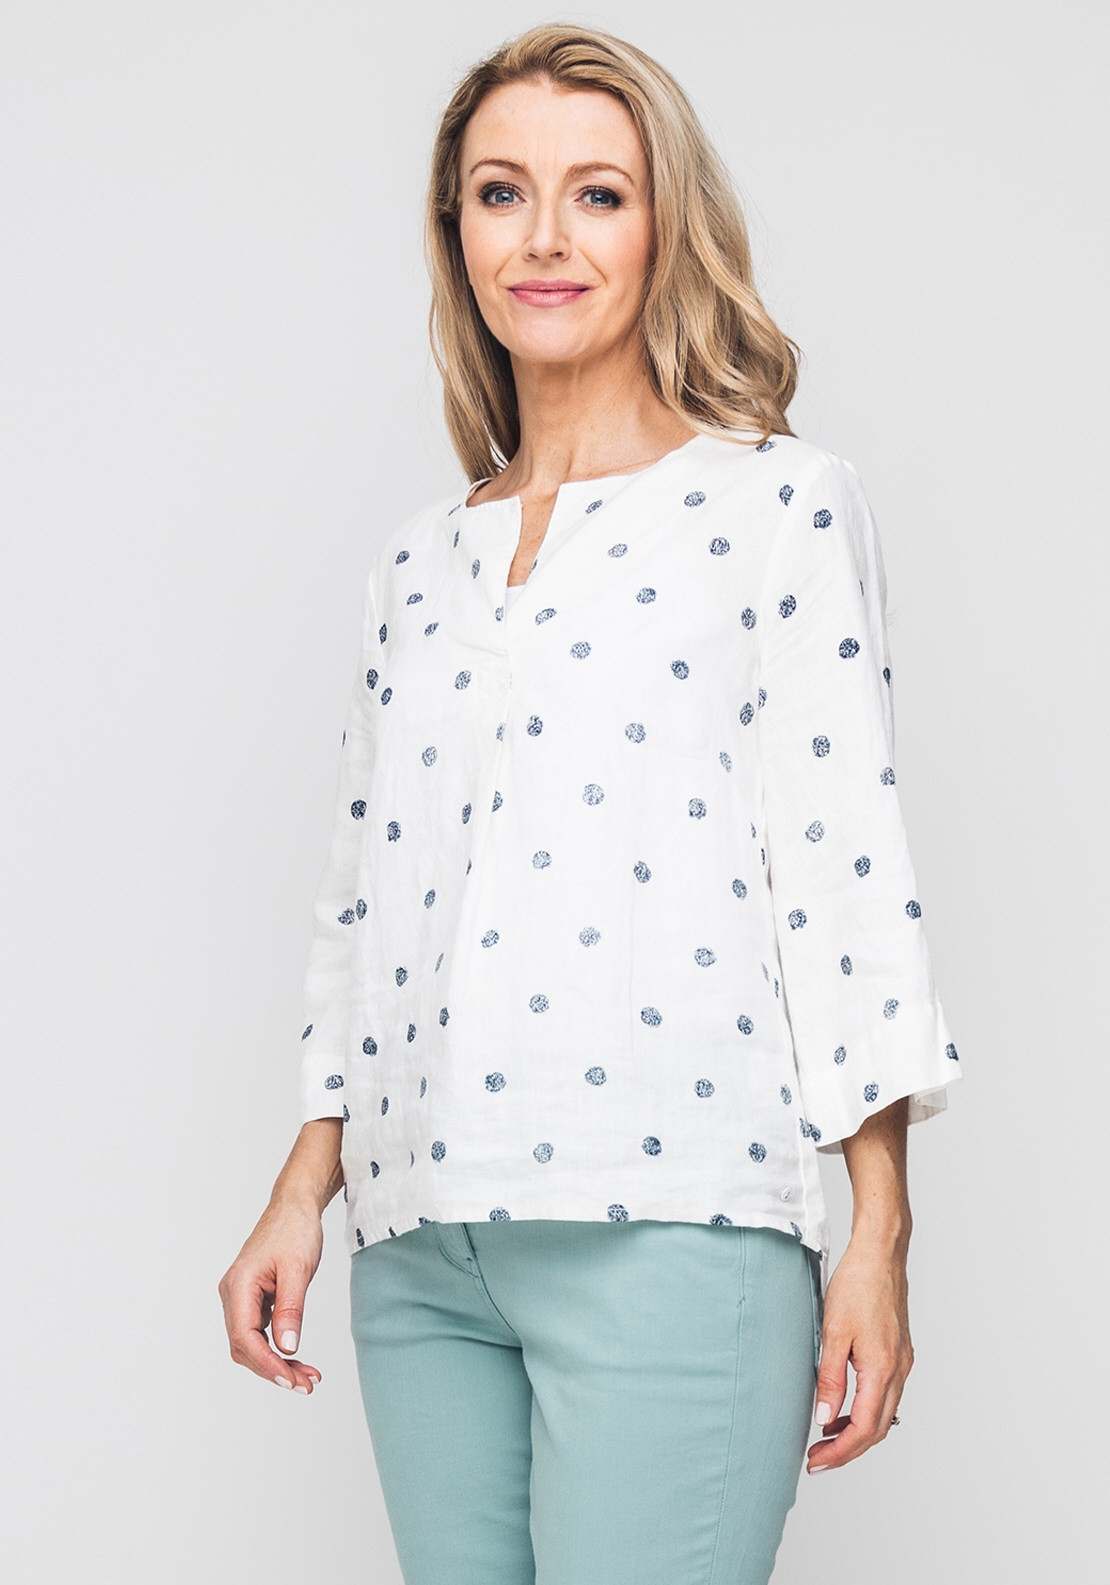 85a56b89ad4 Sandwich Spot Print Linen Tunic Top, White. Be the first to review this  product